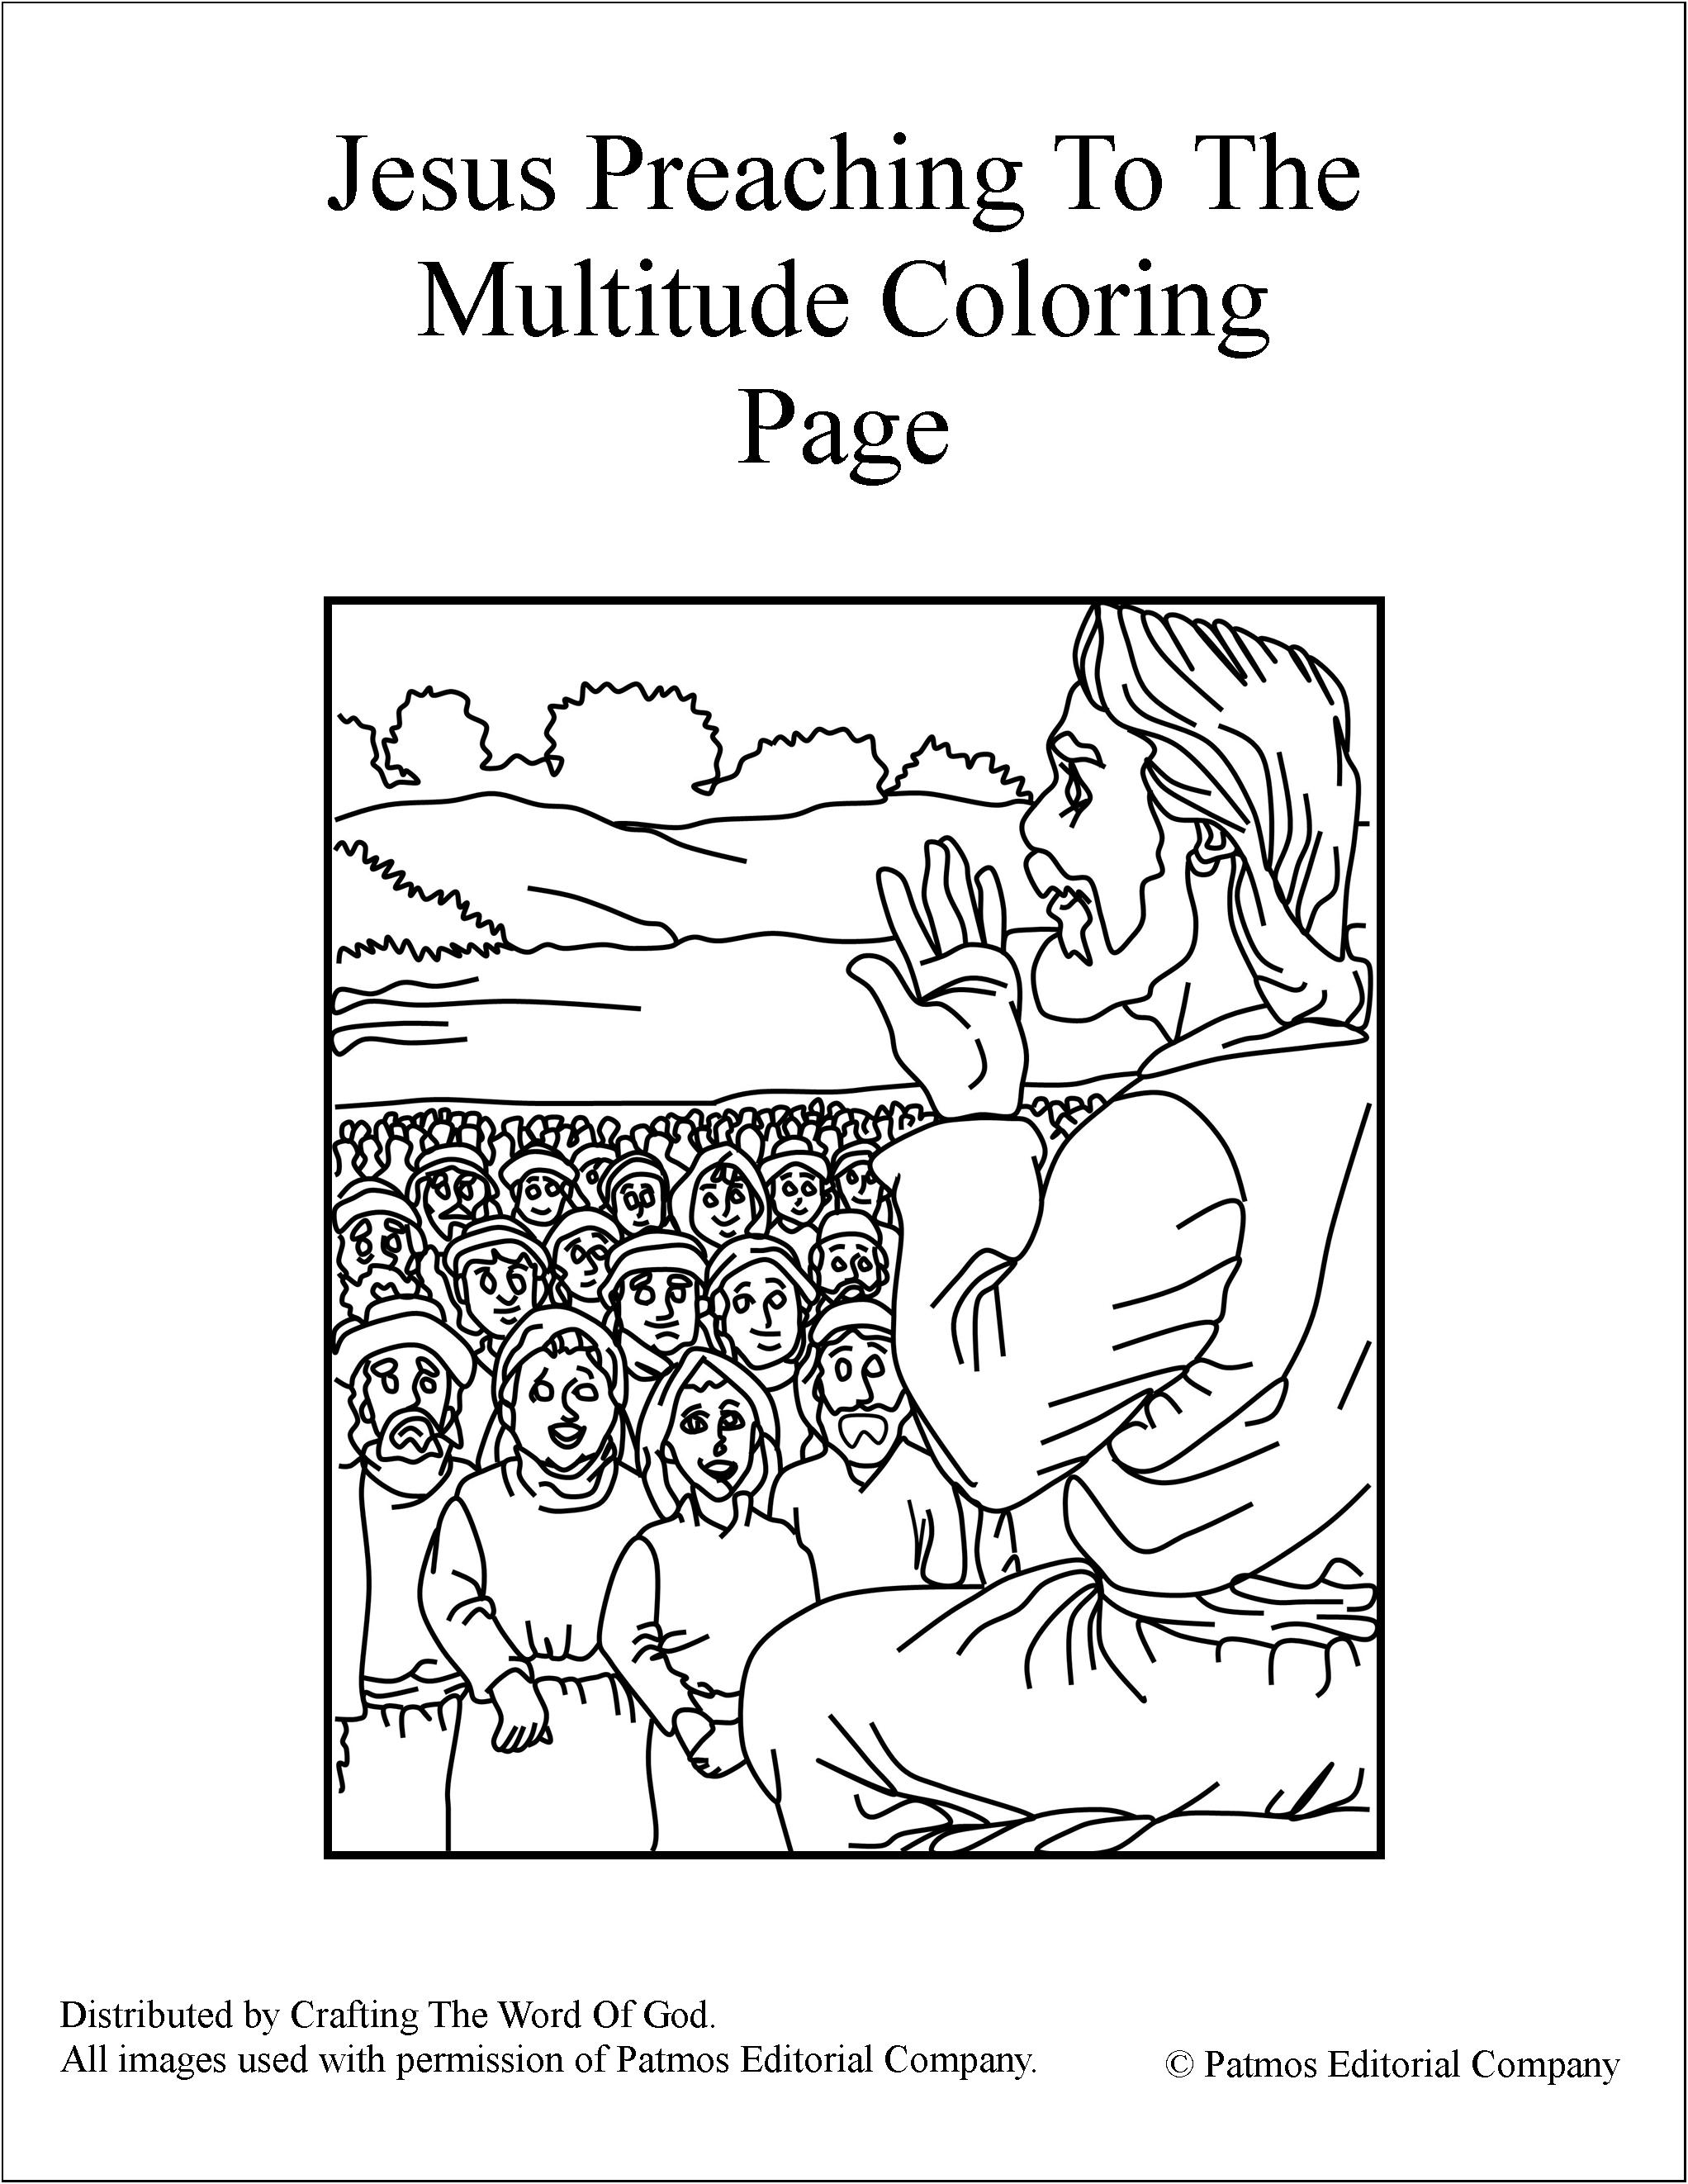 Jesus Preaching To The Multitude- Coloring Page « Crafting